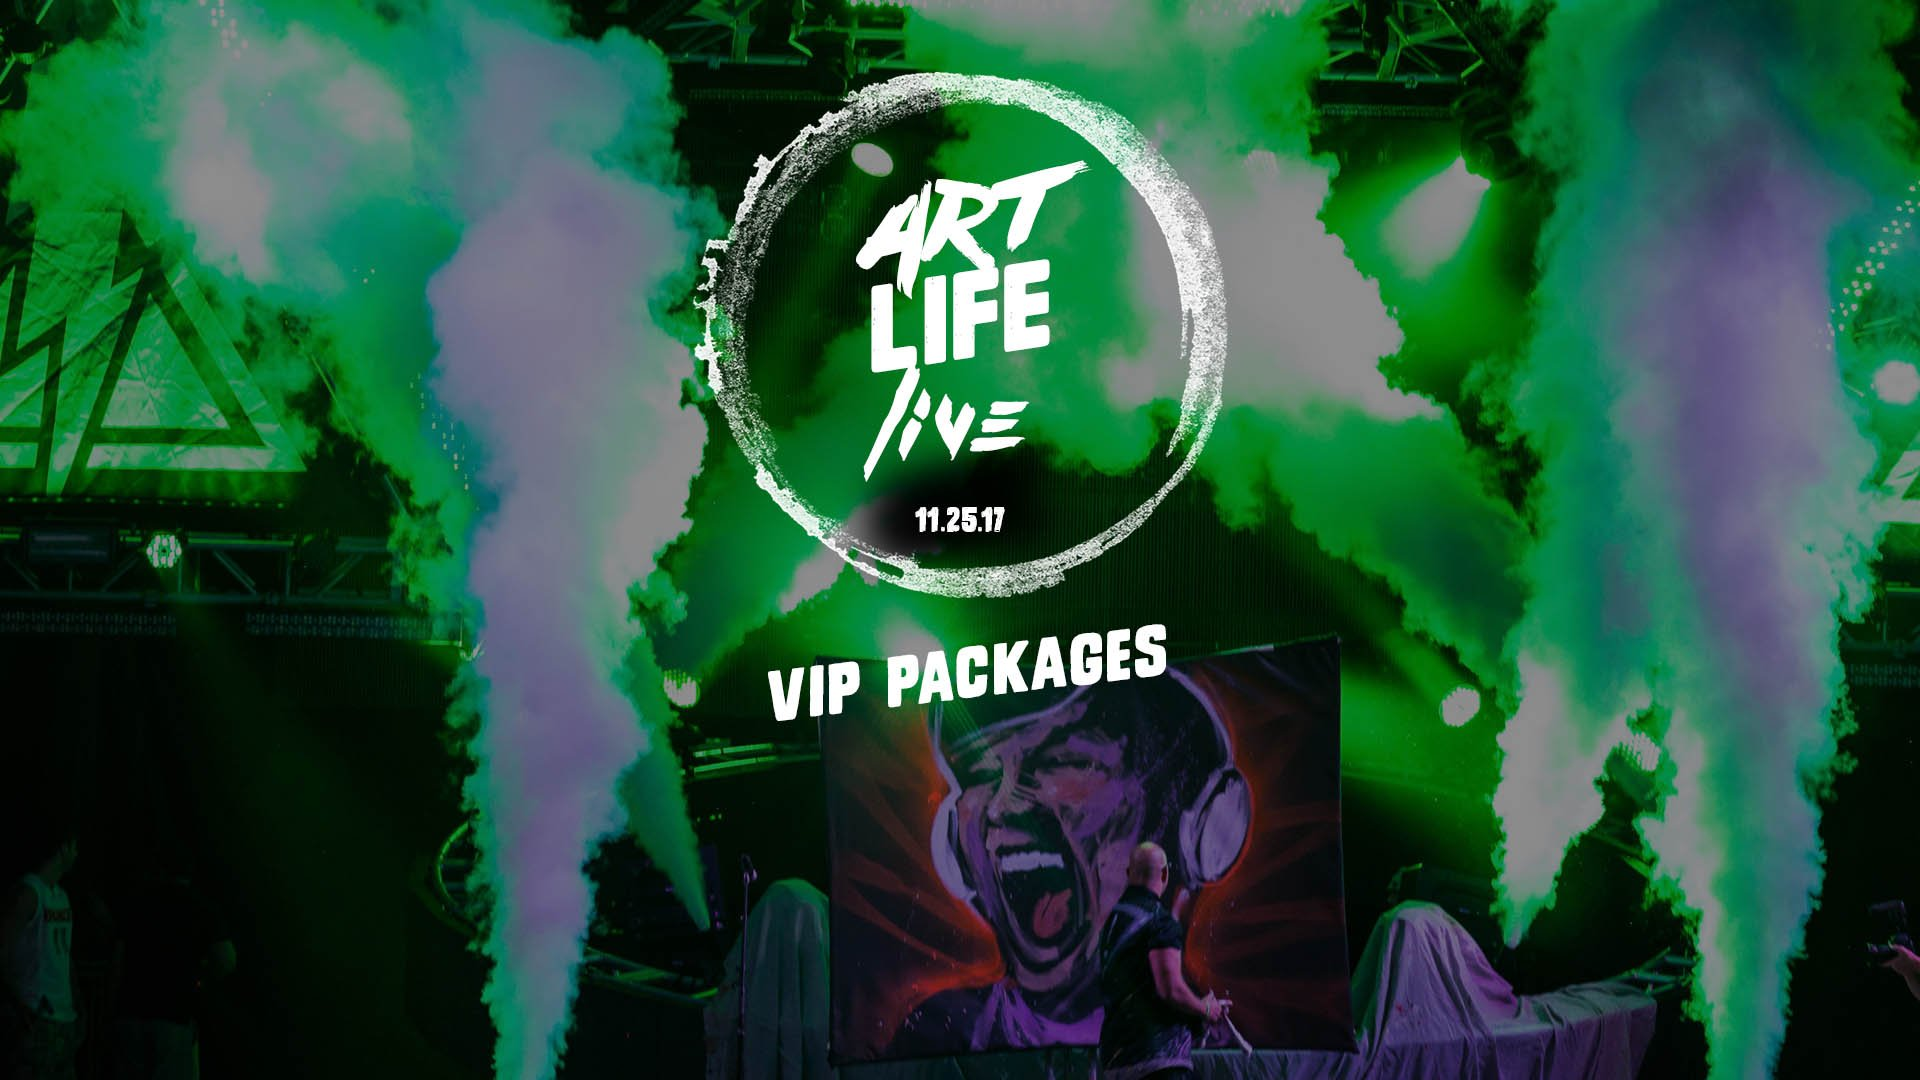 Art Life Tour VIP PACKAGES